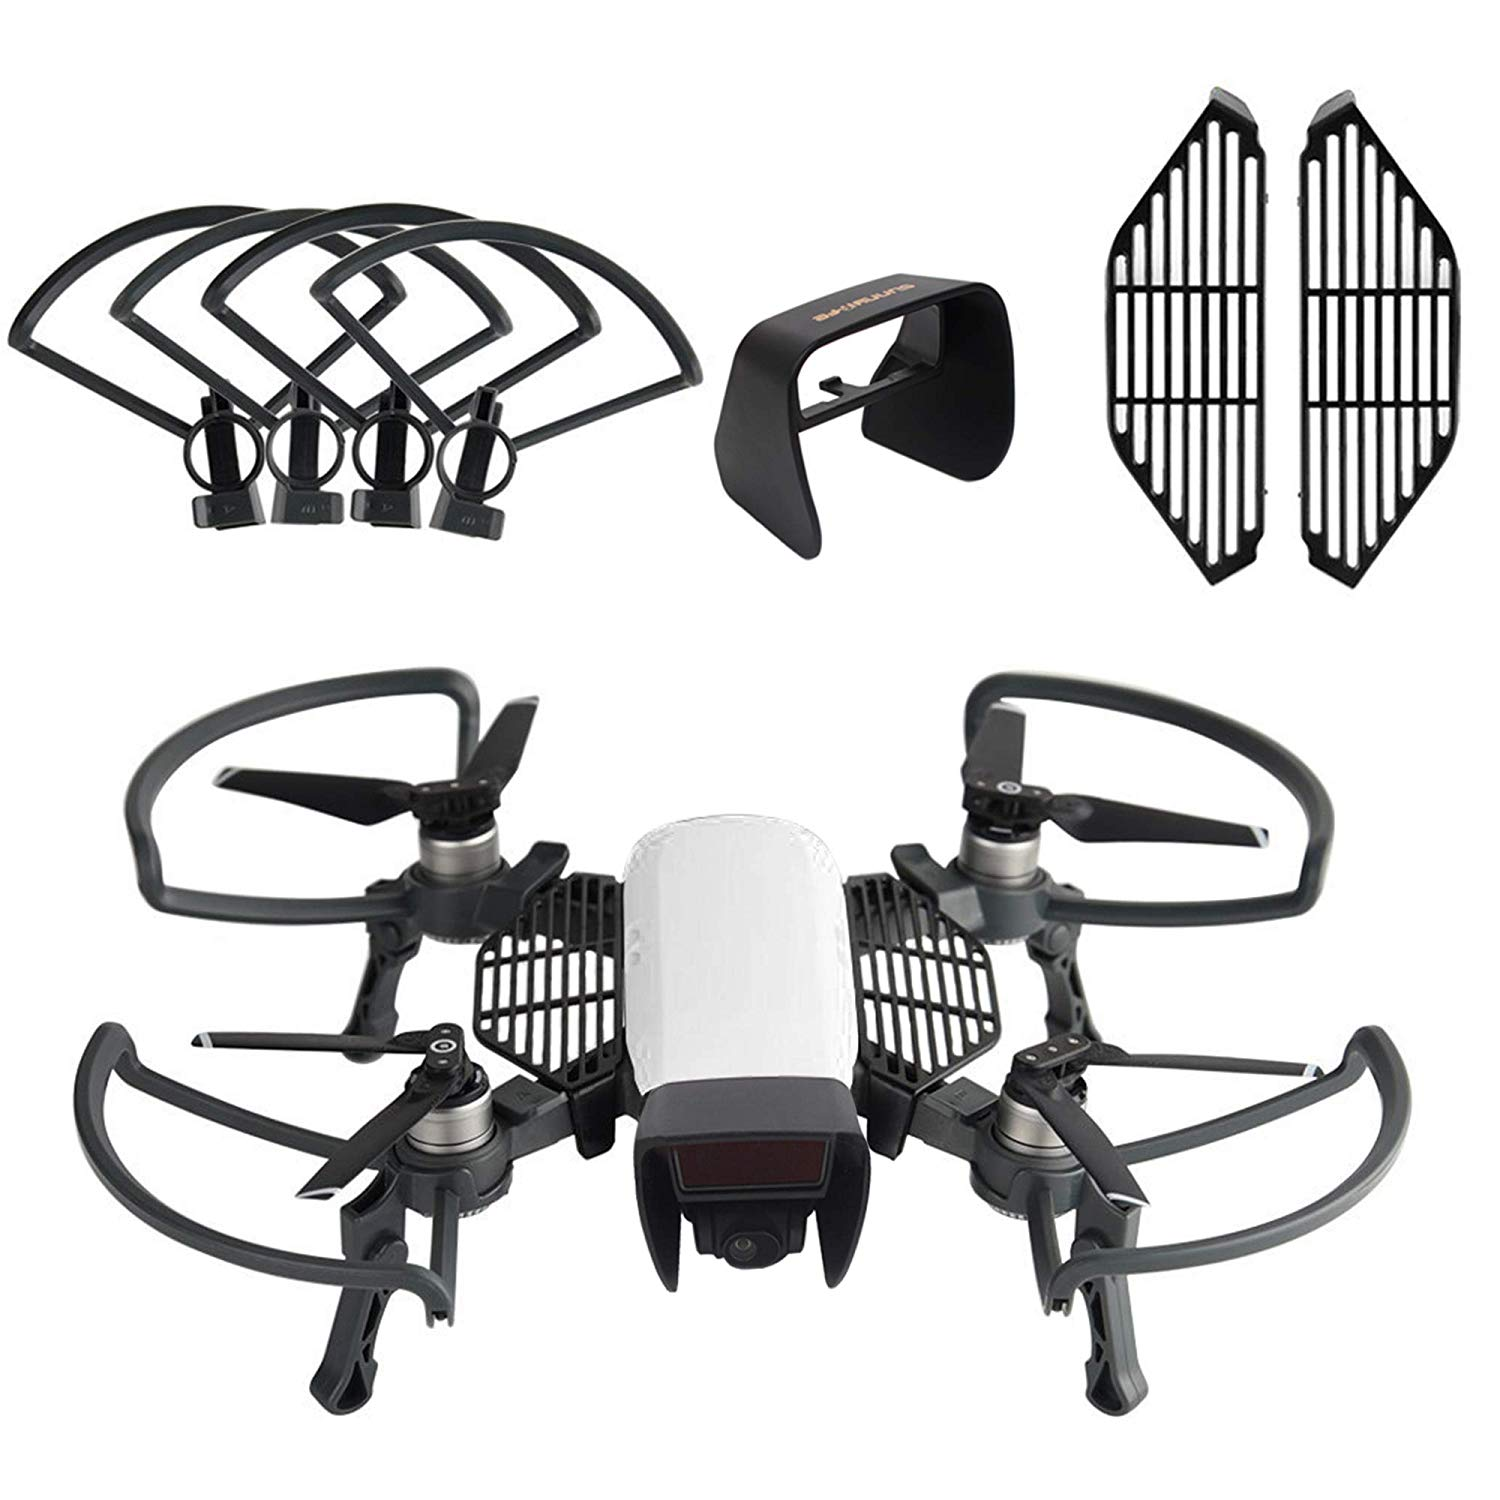 For Dji Spark Drone Accessories Kits,Propeller Guards Foldable Landing Gear, Lens Hood Sun Shade, Finger Guard Board (3 Pack)